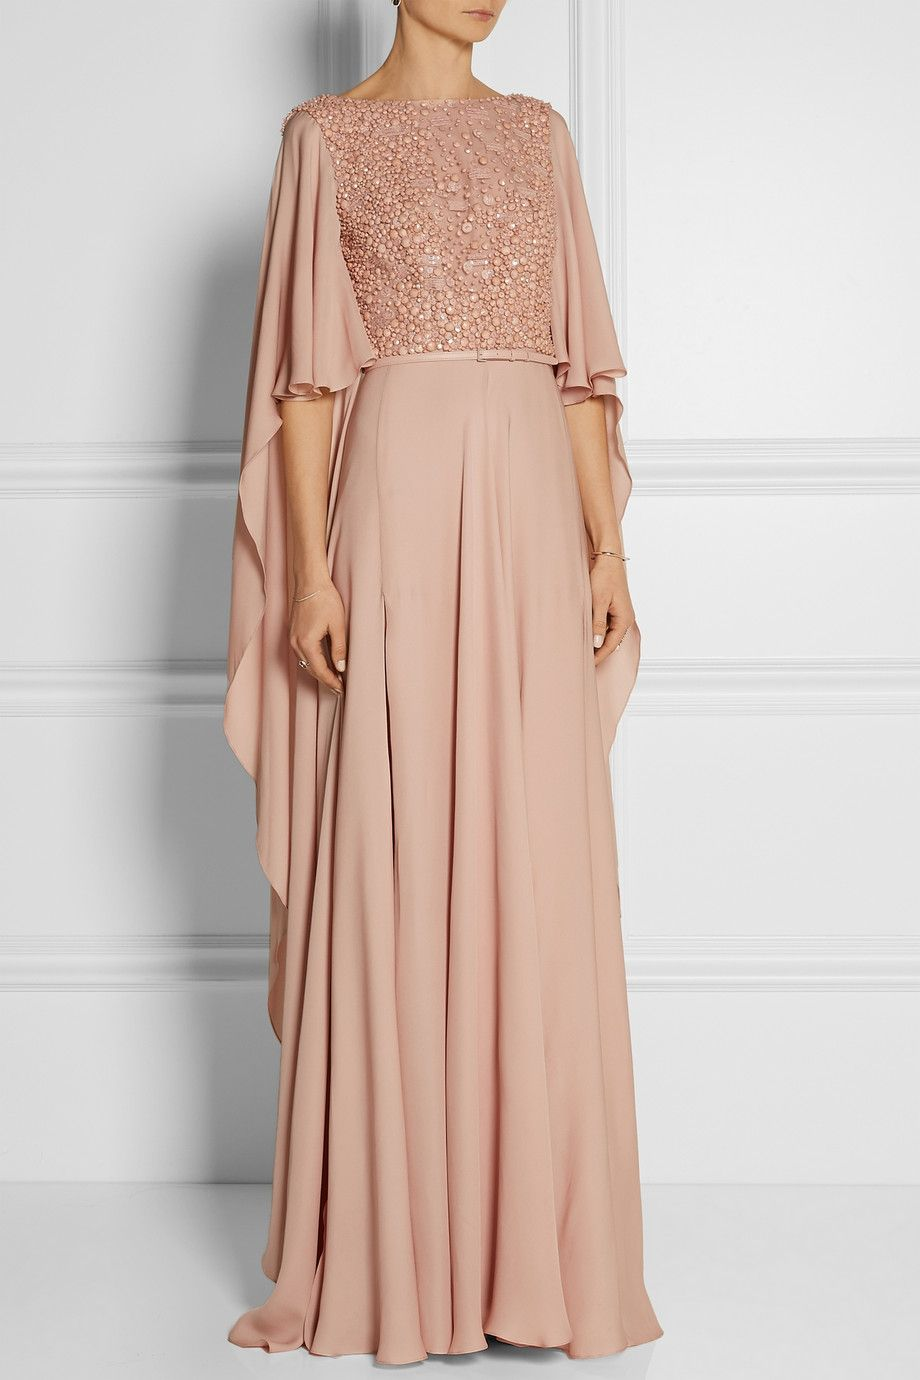 Elie Saab   Embellished belted silk gown   Cut from petal-soft blush silk, Elie Saab's Resort '15 gown looks even more exquisite when you move - it is finished with cape-style sleeves and a short train. The narrow leather belt flatters your waist and brings definition to the billowy fabric. Keep the focus on the heavily embellished bodice by styling this piece with delicate jewelry. #gorgeous #divine #gowns #feminine #elegant #classy #style #fashion #blush